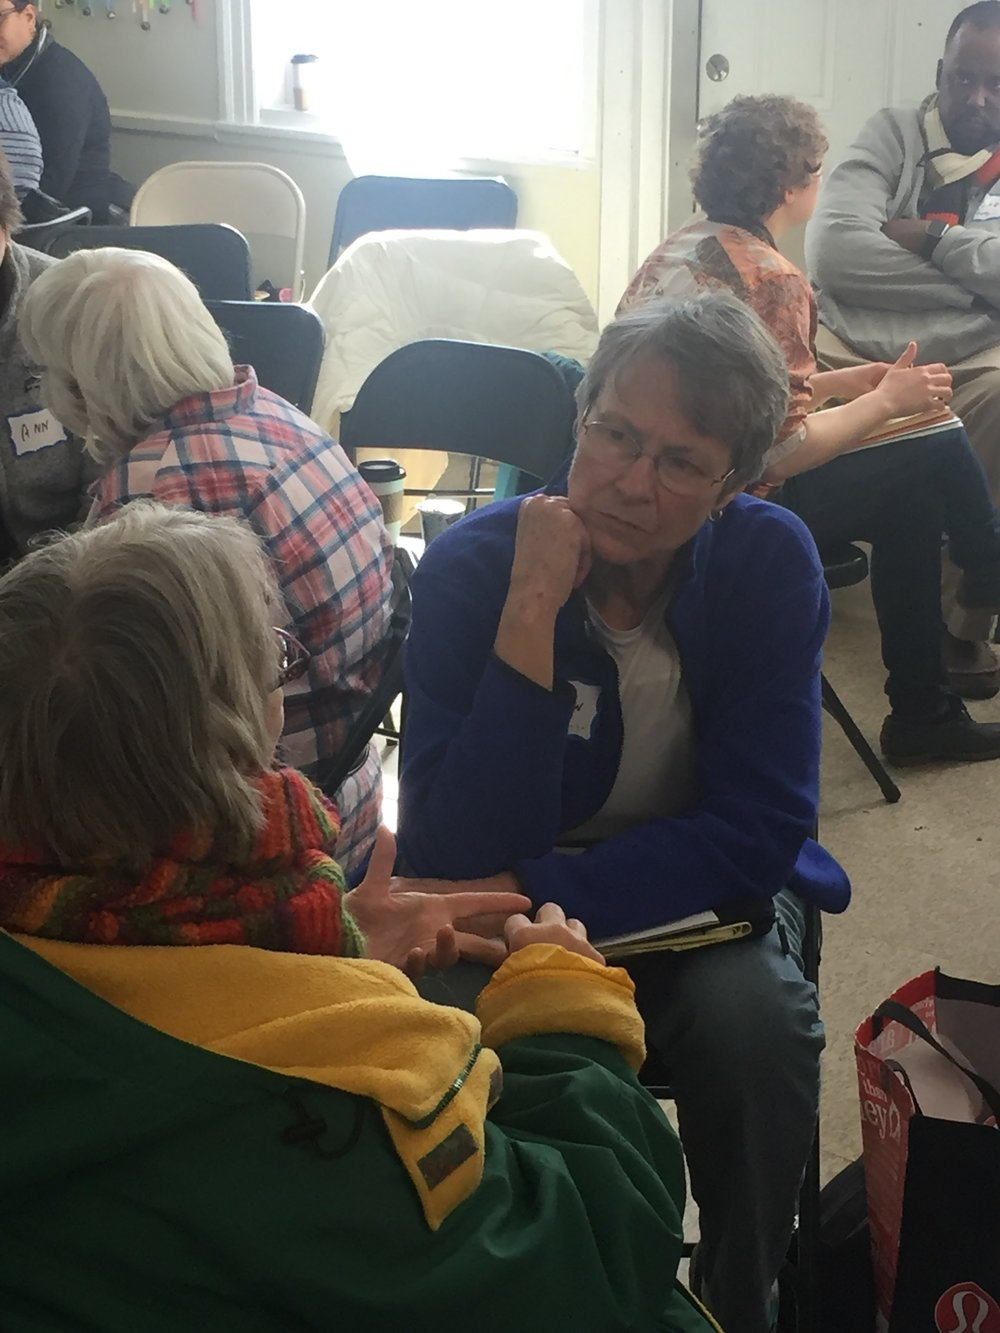 The Rev. Barbara Williamson, from St. Elizabeth's Sudbury, and (NAME?) from Milton Courageous Conversations practice coaching at the March workshop.